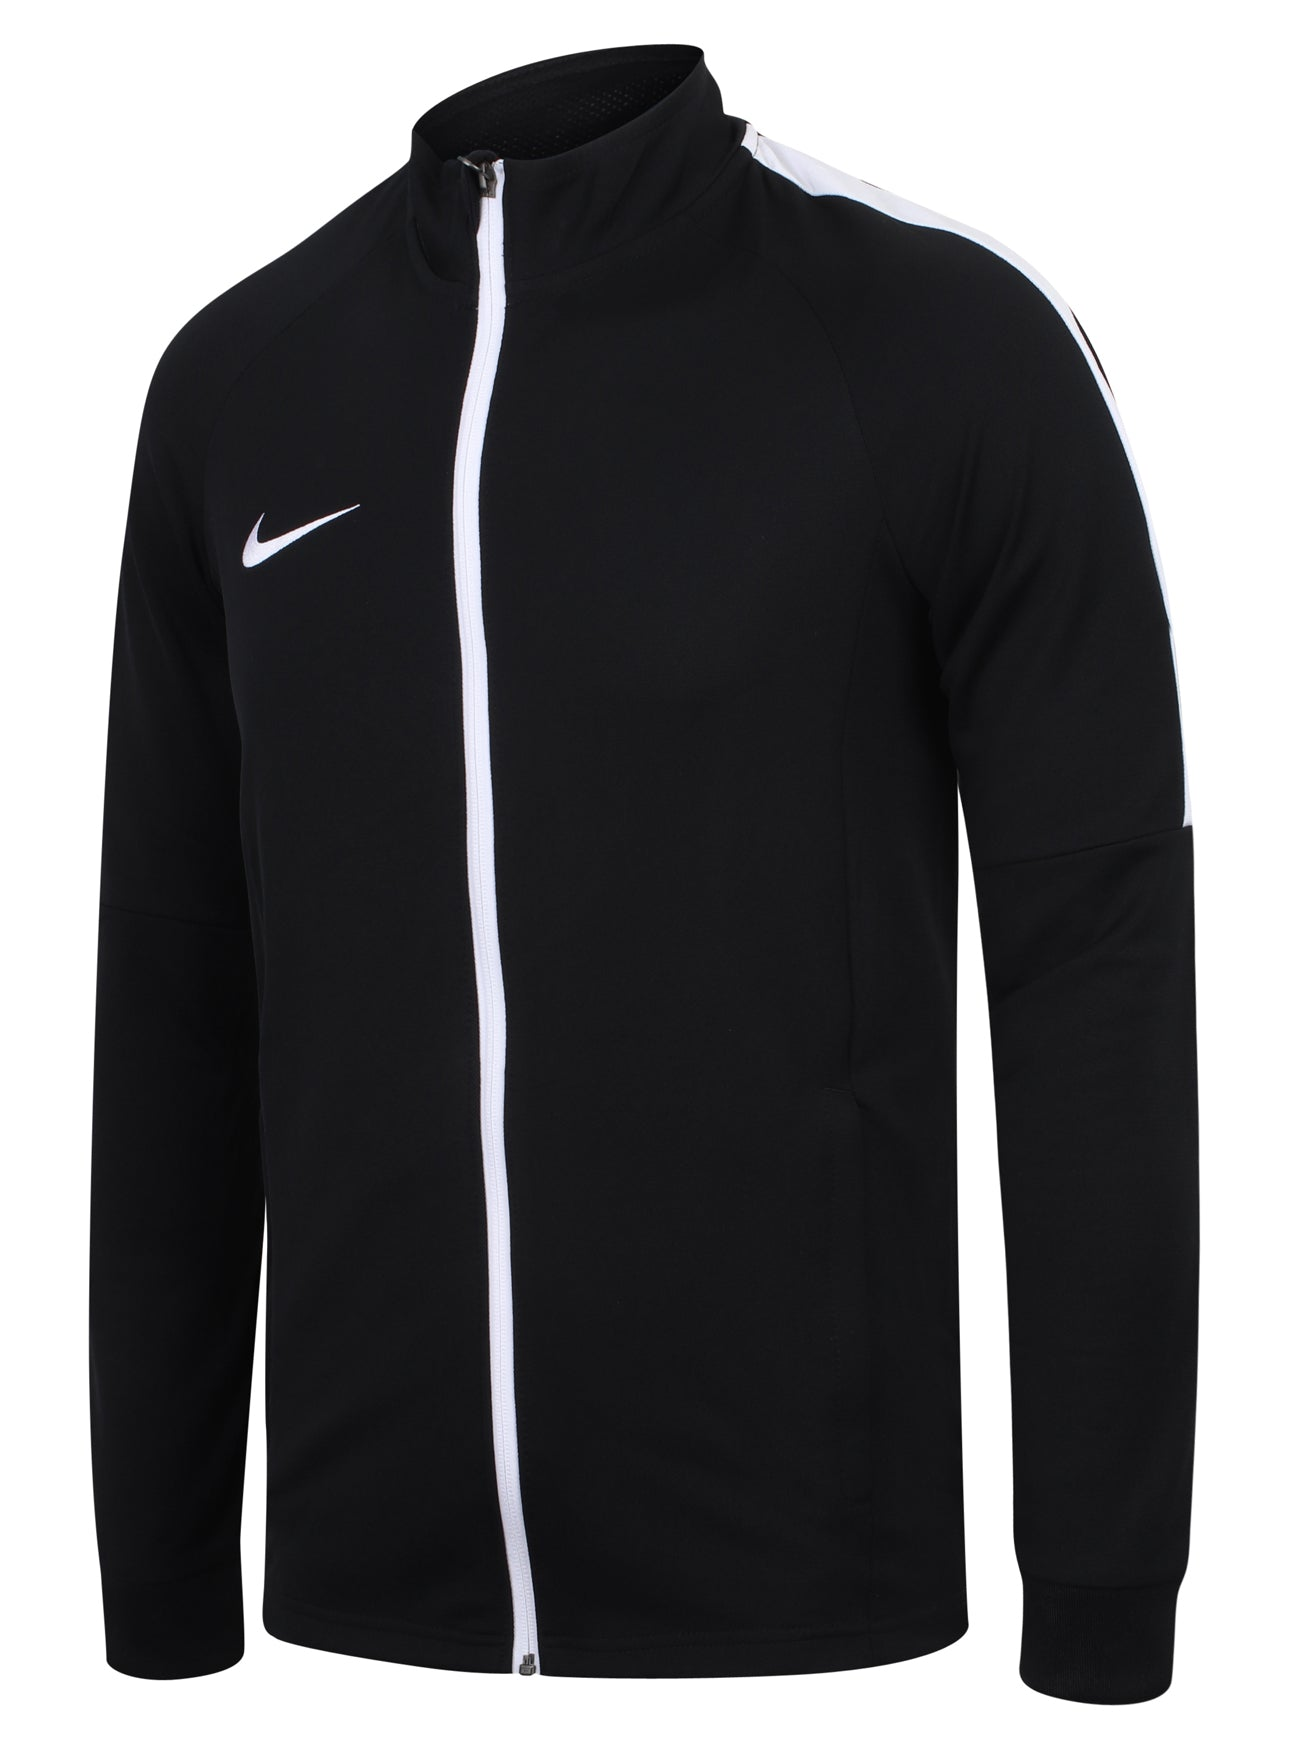 wholesale dealer f3ed4 1a84f ... Nike Mens Dry Academy Black Dri-Fit Polyester Warm Up Full Tracksuit  ...